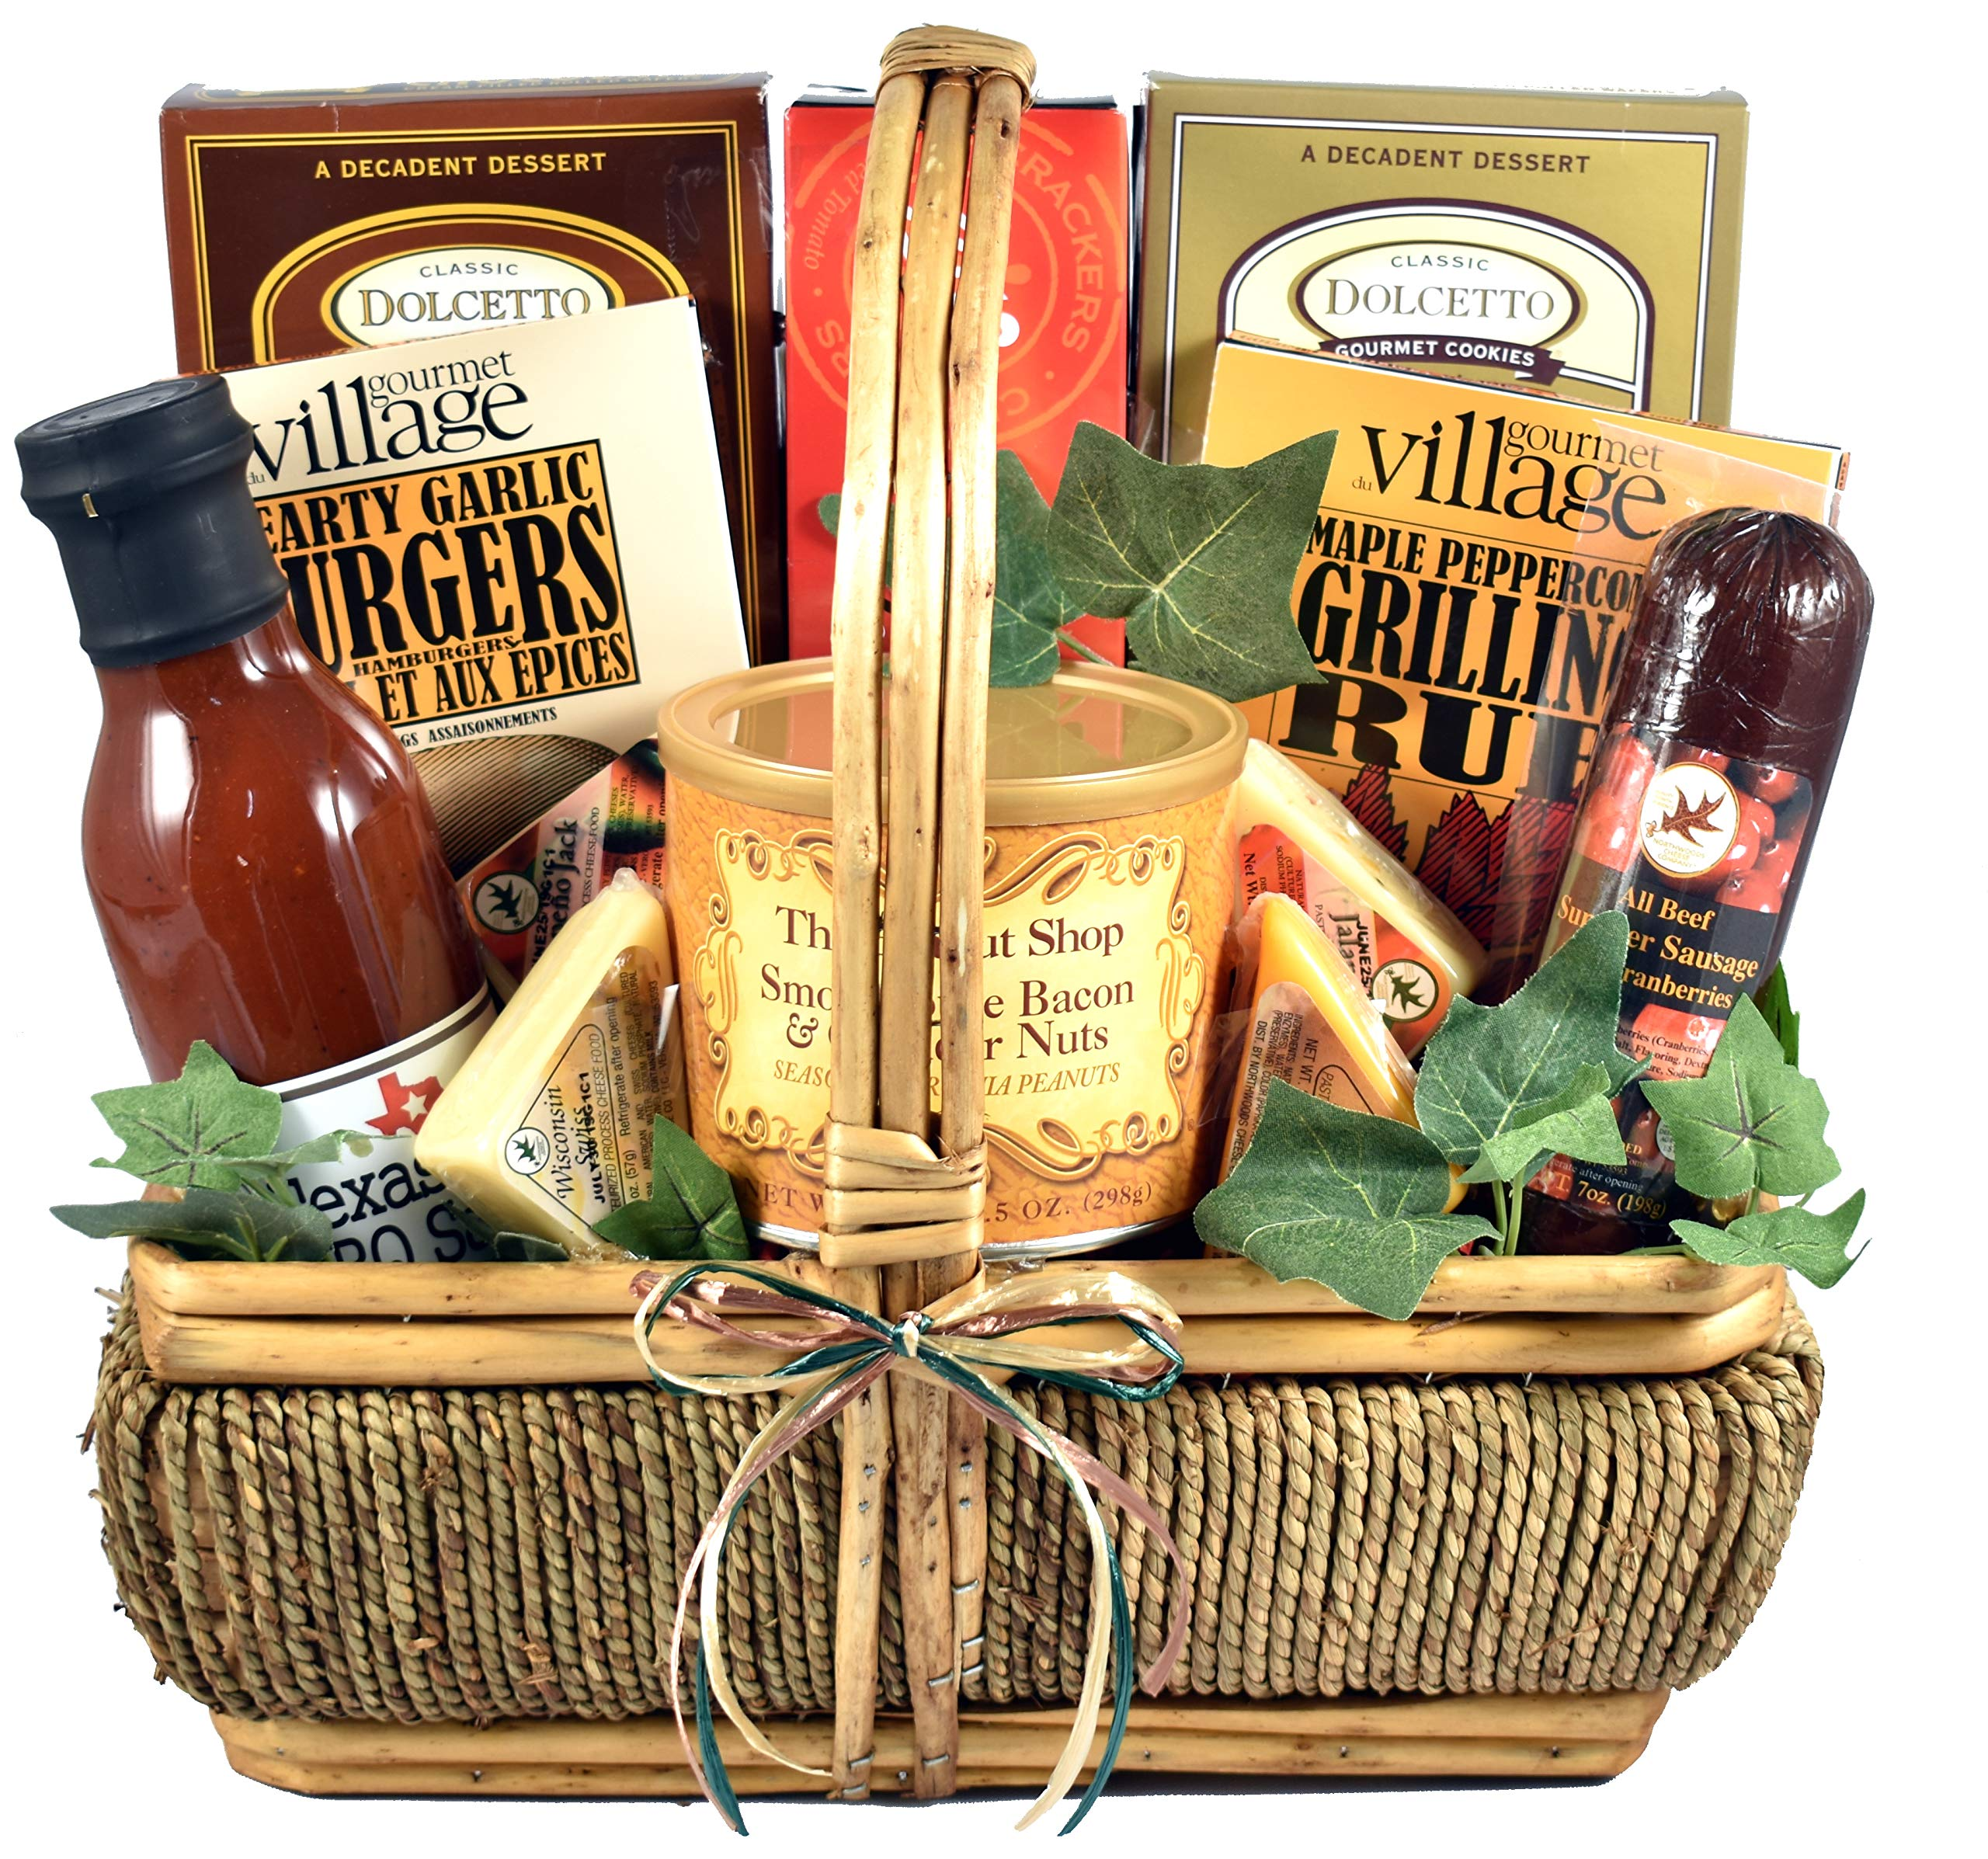 The Grill Master, Deluxe - A Grilling Gift Basket For Men With BBQ Sauce, Rubs, Recipes, Nuts & More, 7 lb